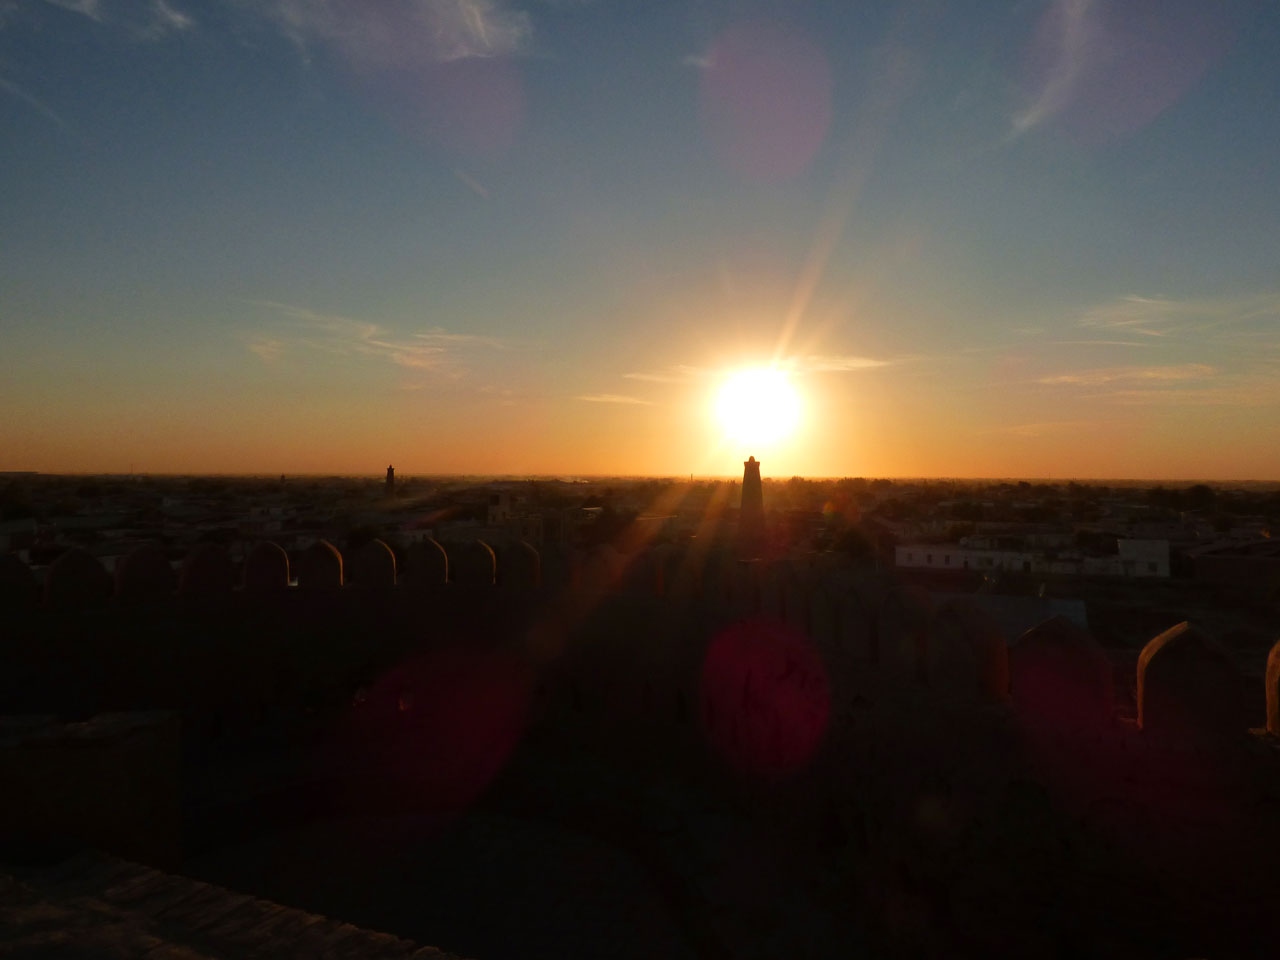 Sunset over the Ichon Qala, Khiva